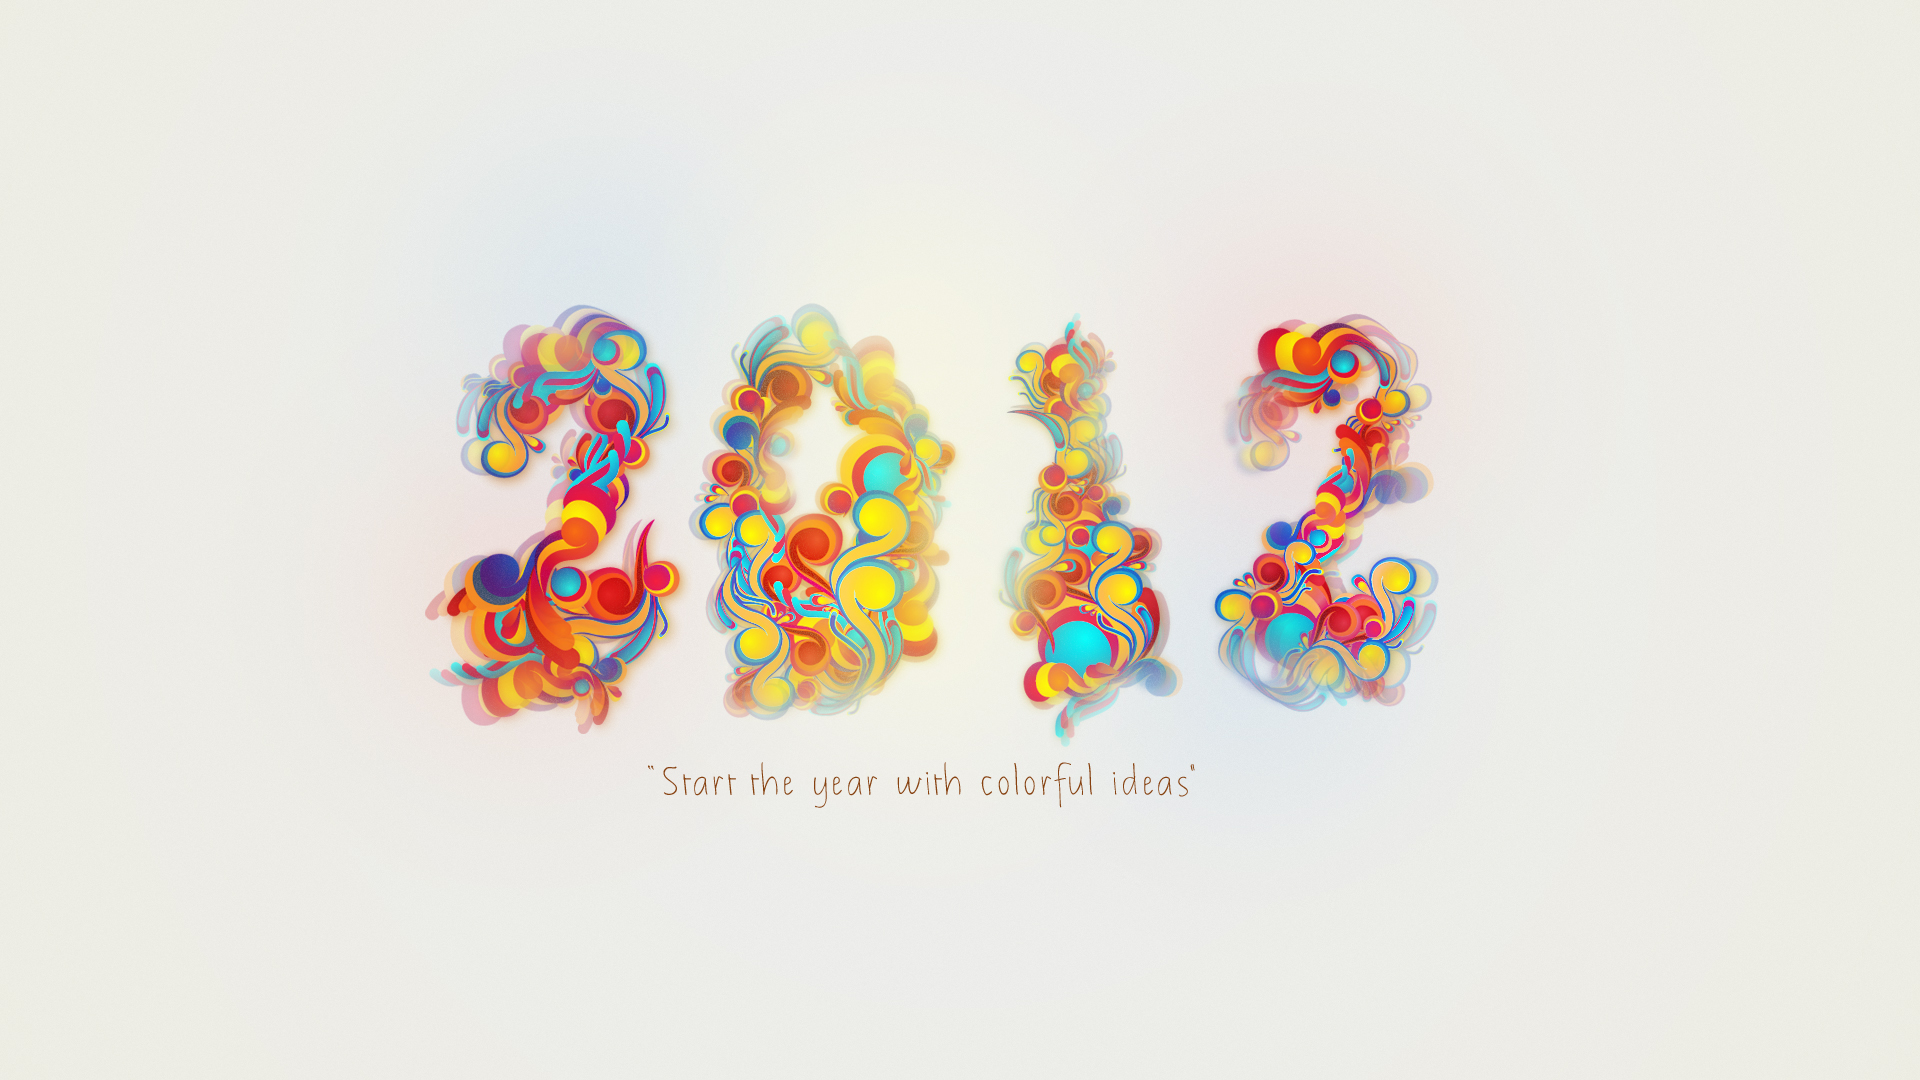 2012 Colorful New Year 769.51 Kb